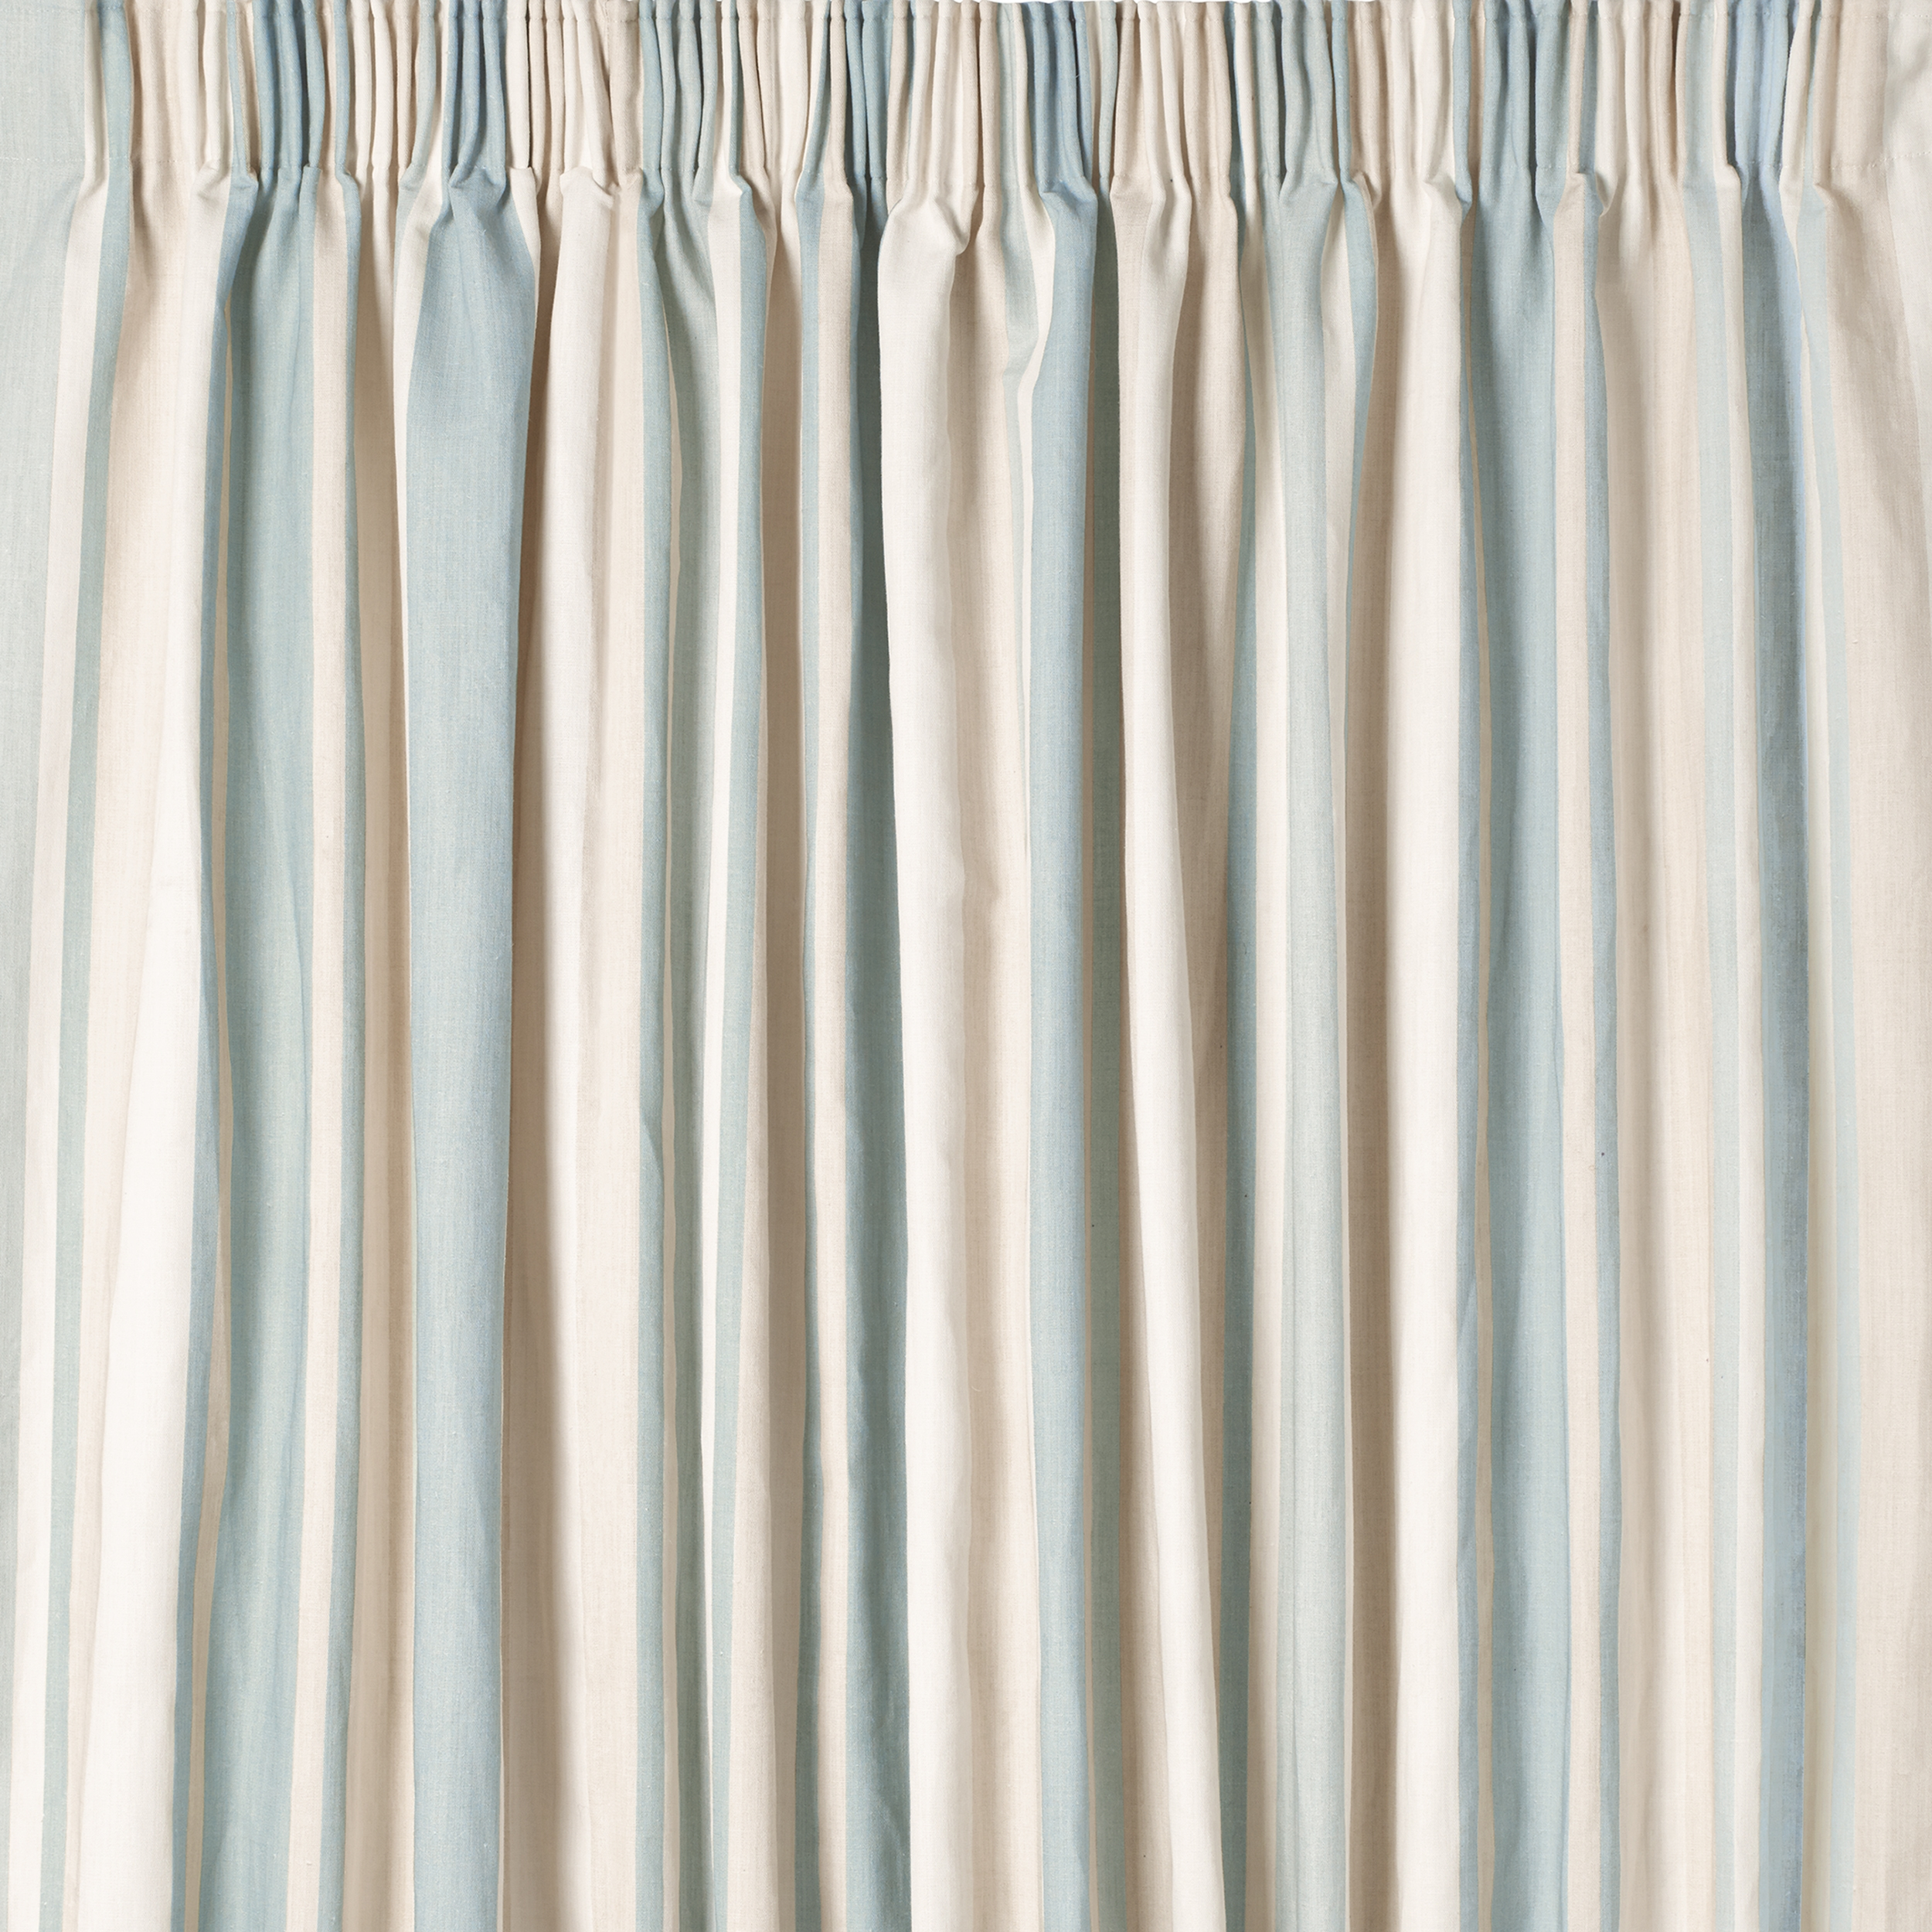 Awning Stripe Duck Egg Ready Made Curtains At Laura Ashley Intended For Duck Egg Blue Striped Curtains (View 2 of 15)